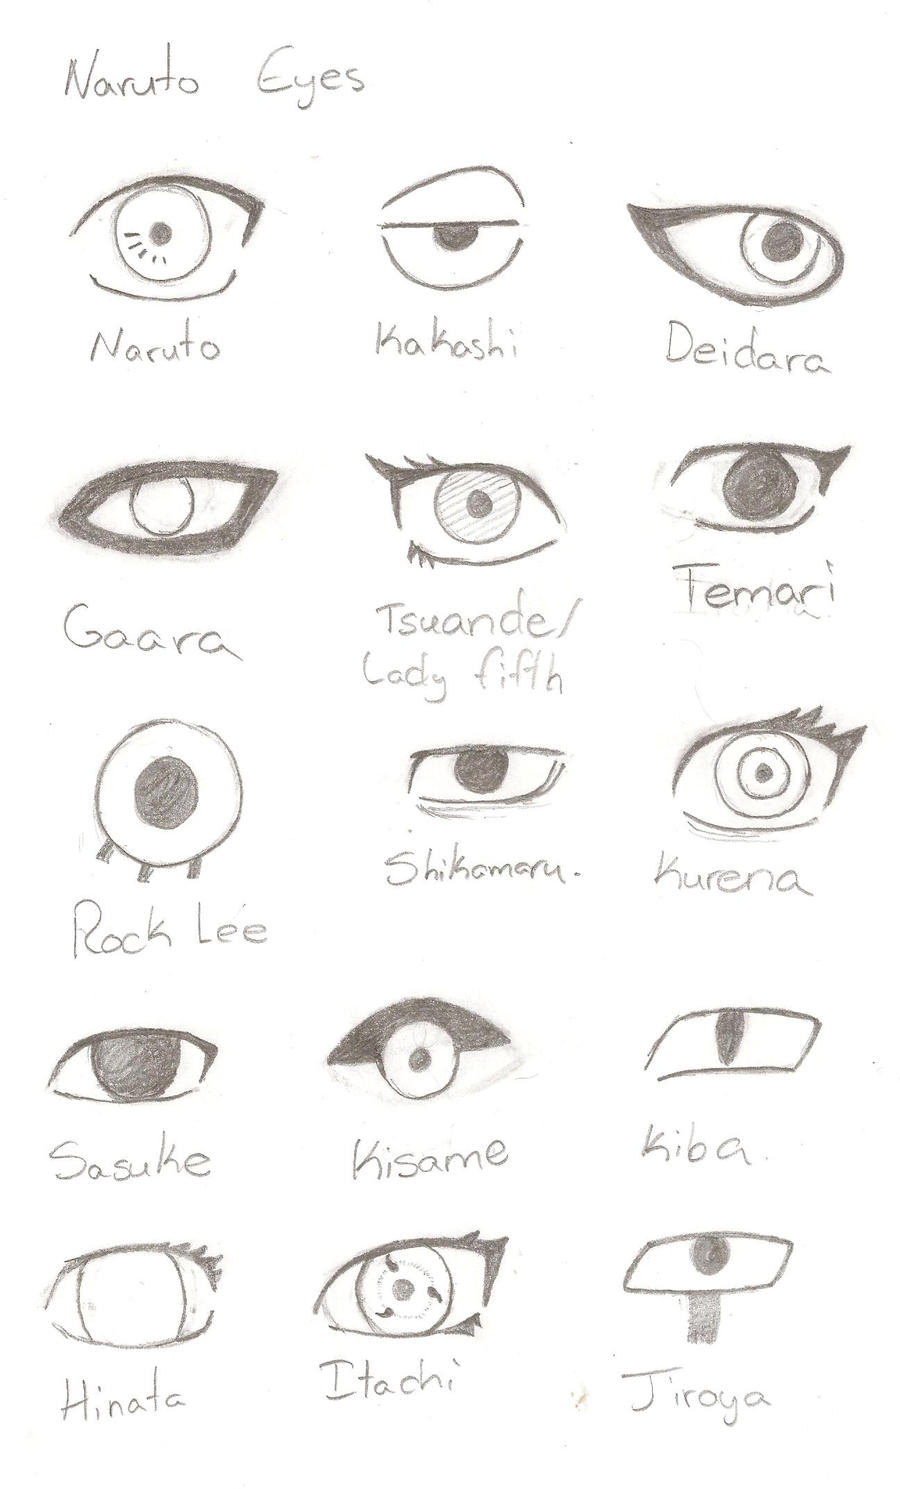 Naruto Eyes Collection By Emalynne Blackwell